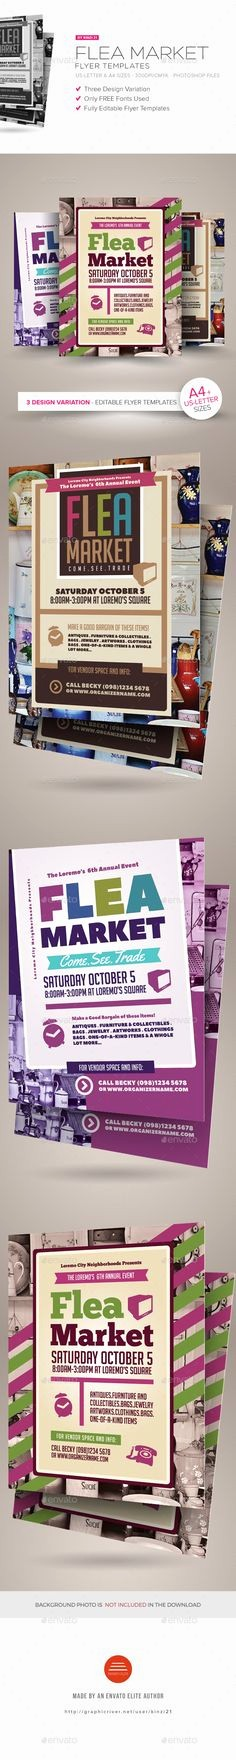 Flea Market Flyer Template Free Fresh Pinterest • the World's Catalog Of Ideas